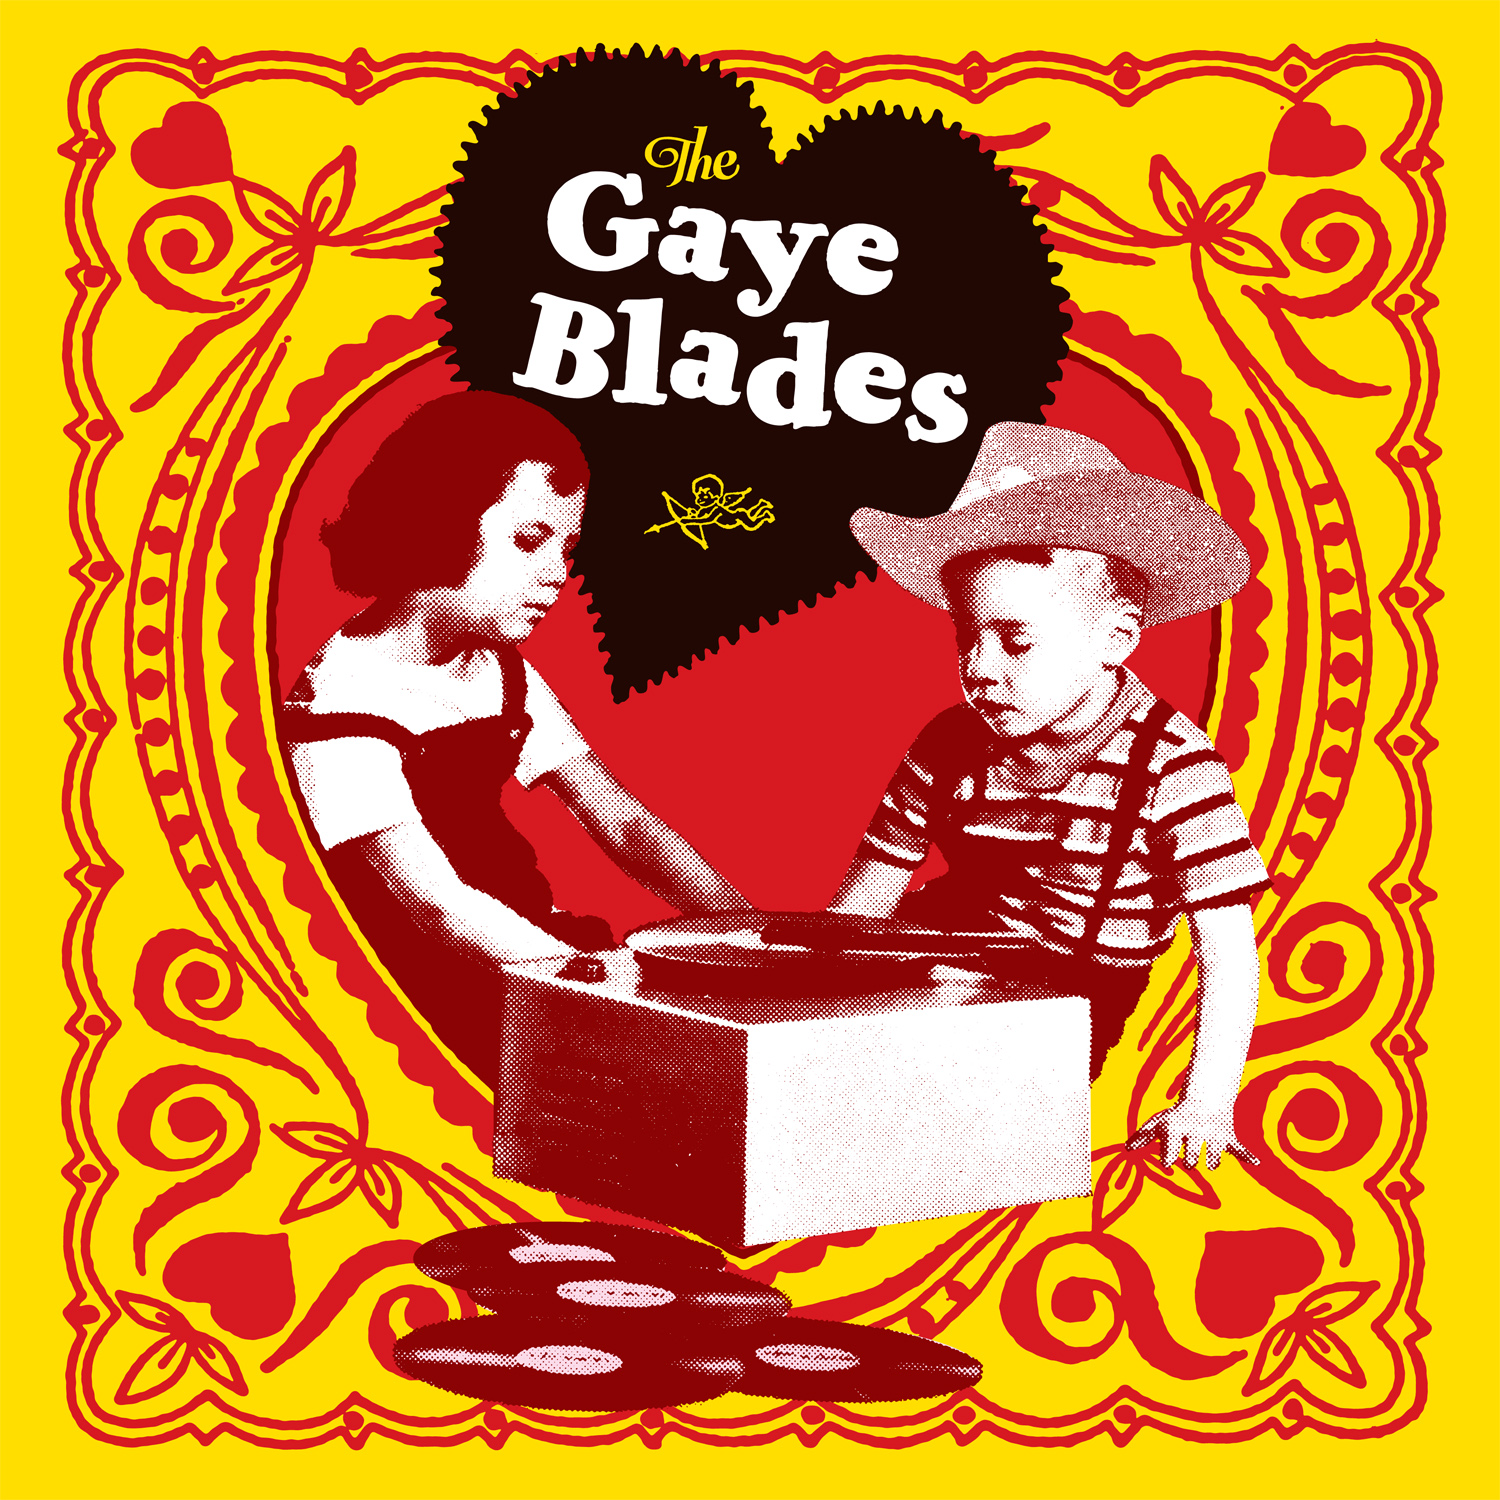 The Gaye Blades LP cover